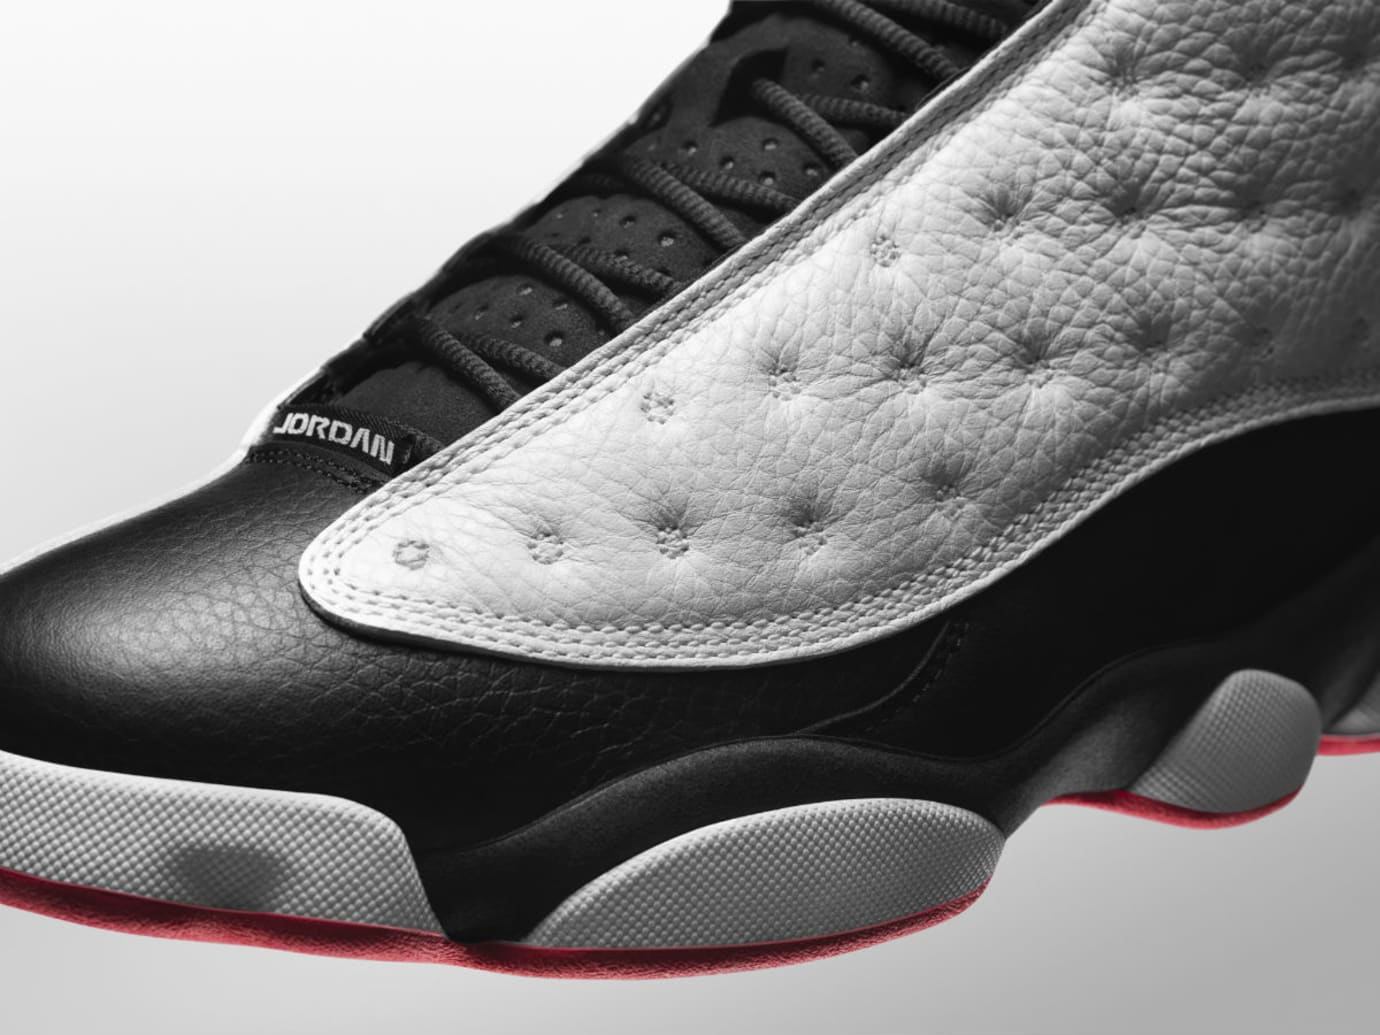 pretty nice 97e13 30158 Image via Gerald Flores Air Jordan 13 He Got Game 2018